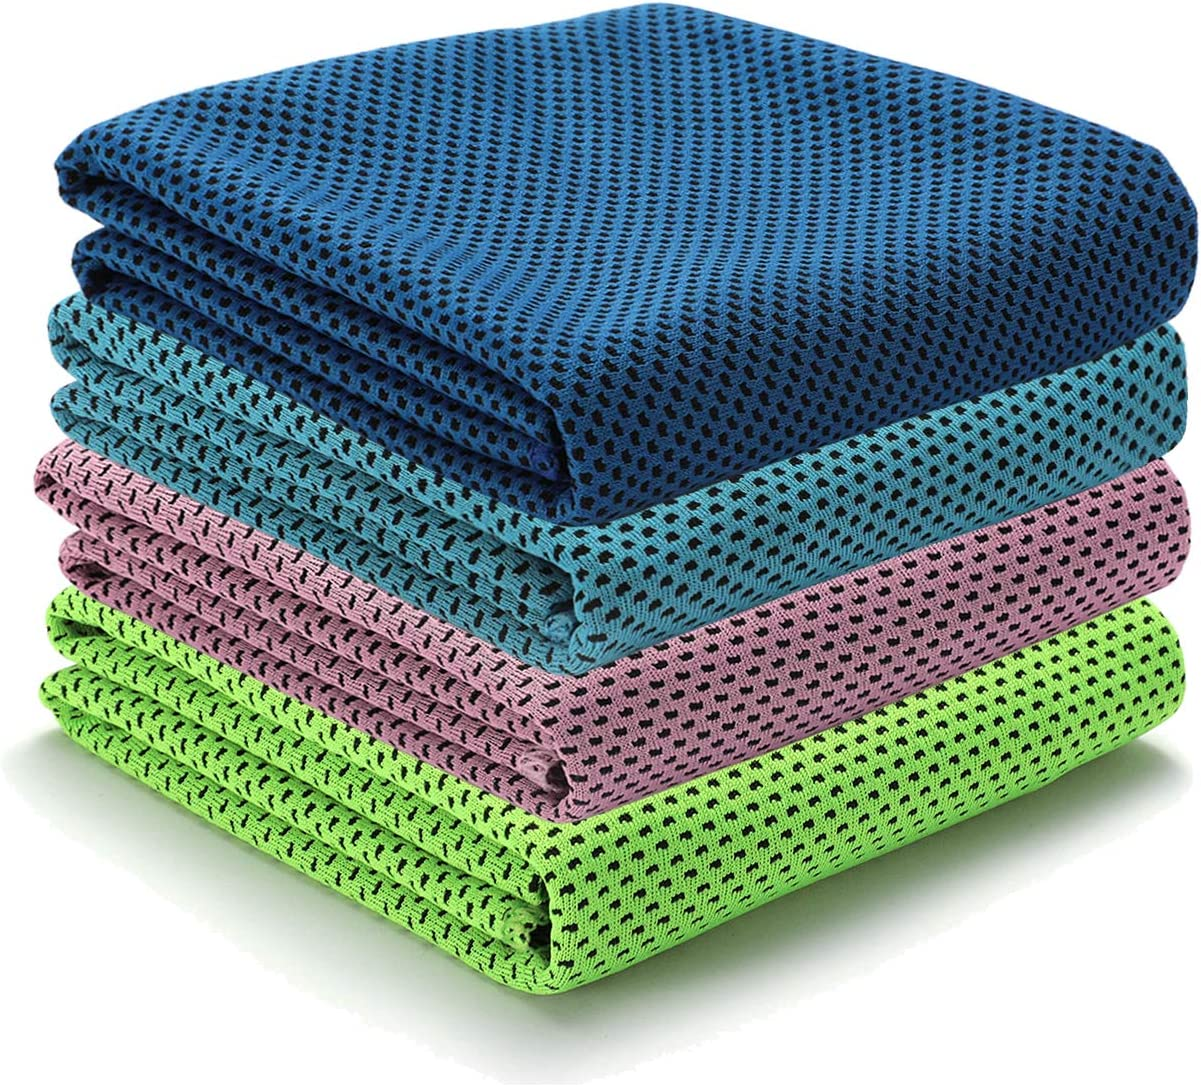 """BUENOD 4 Pack Cooling Towels (37""""x11""""), Ice Towel for Exercising, Lightweight and Breathable Towel for Sport, Yoga, Gym, Workout, Camping, Fitness, Running, Indoor & Outdoor Activities"""